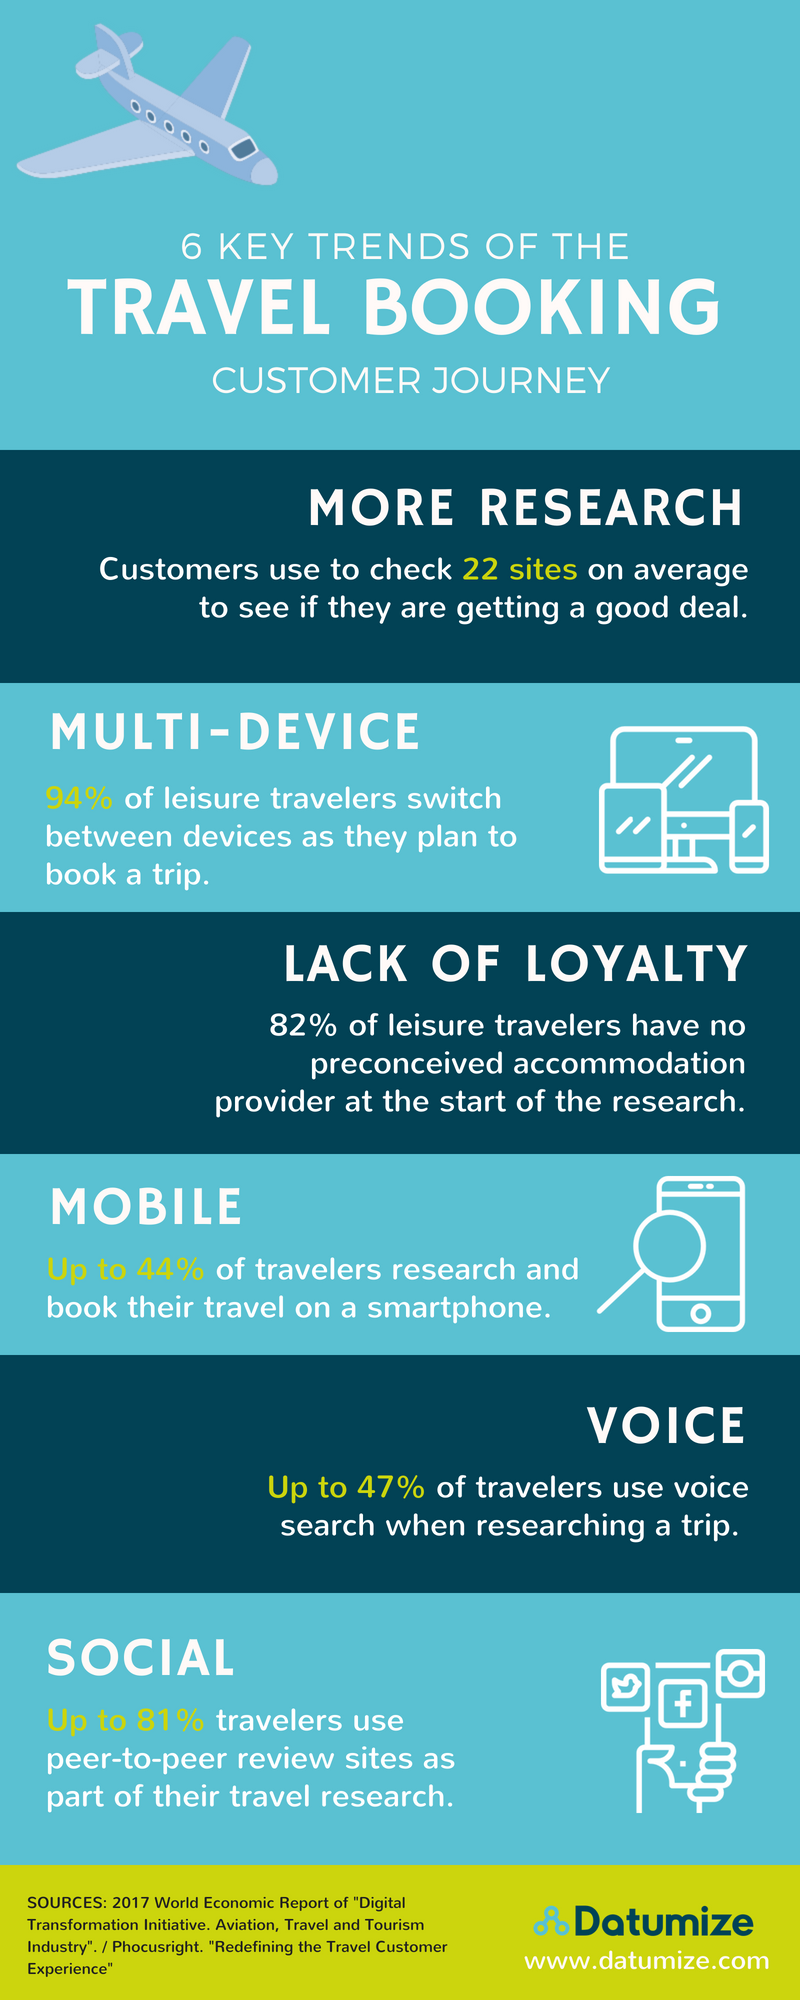 Travel Booking Customer Journey Infographic